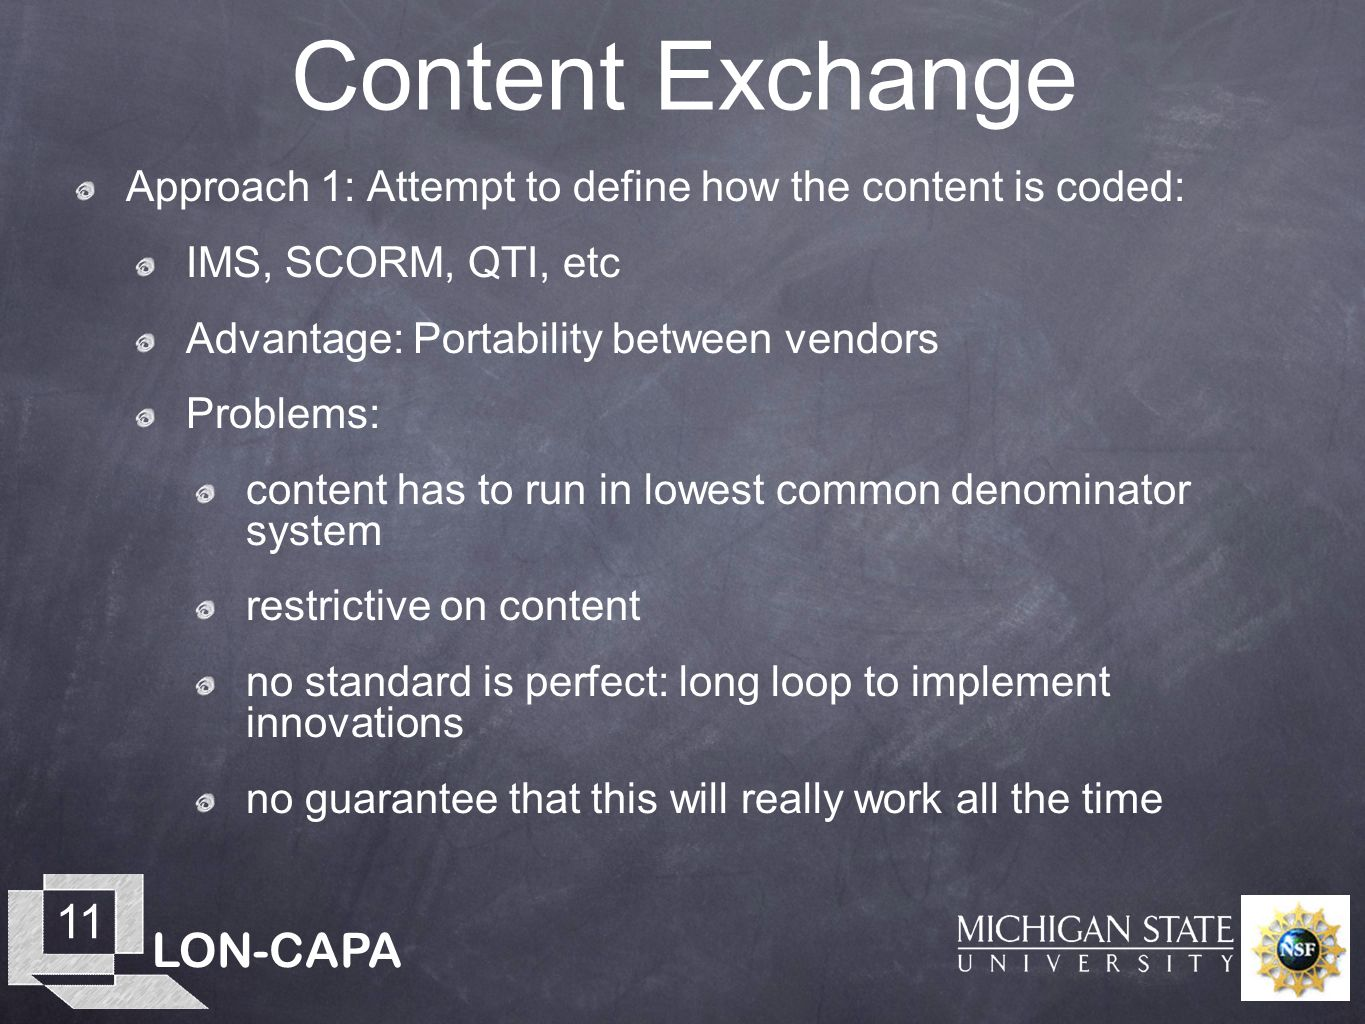 LON-CAPA 11 Content Exchange Approach 1: Attempt to define how the content is coded: IMS, SCORM, QTI, etc Advantage: Portability between vendors Problems: content has to run in lowest common denominator system restrictive on content no standard is perfect: long loop to implement innovations no guarantee that this will really work all the time